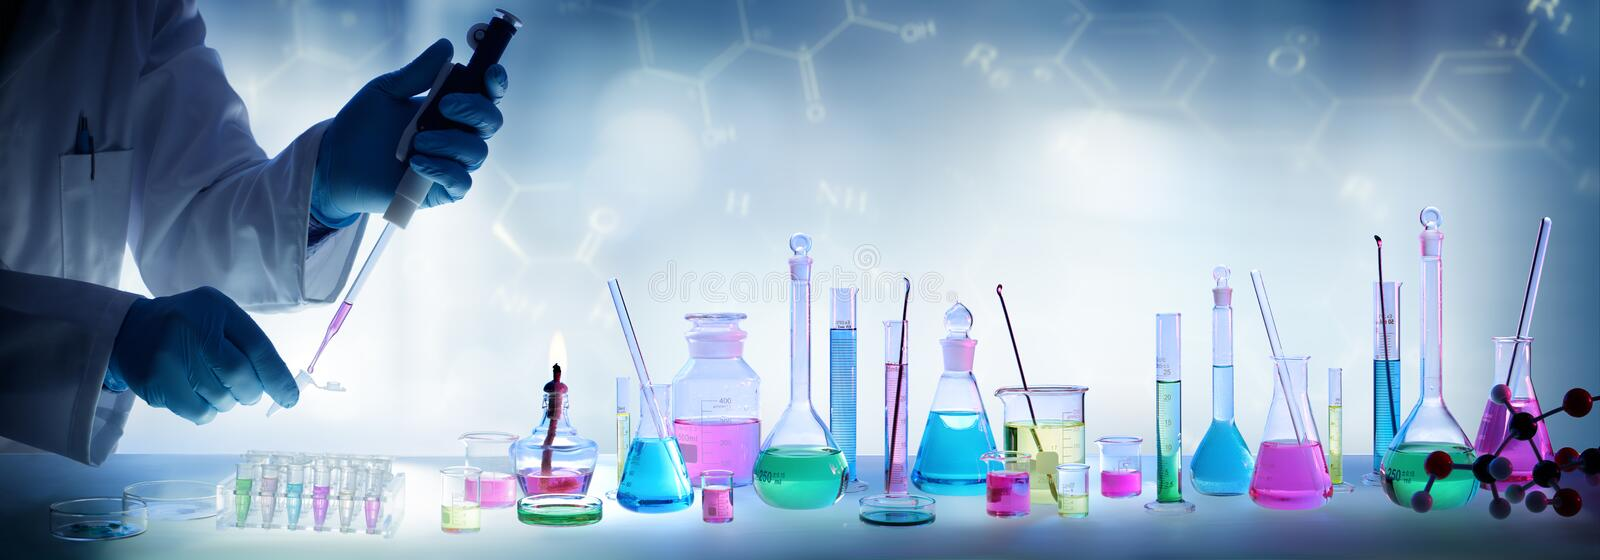 Laboratoire d'analyse - becher de With Pipette And de scientifique photographie stock